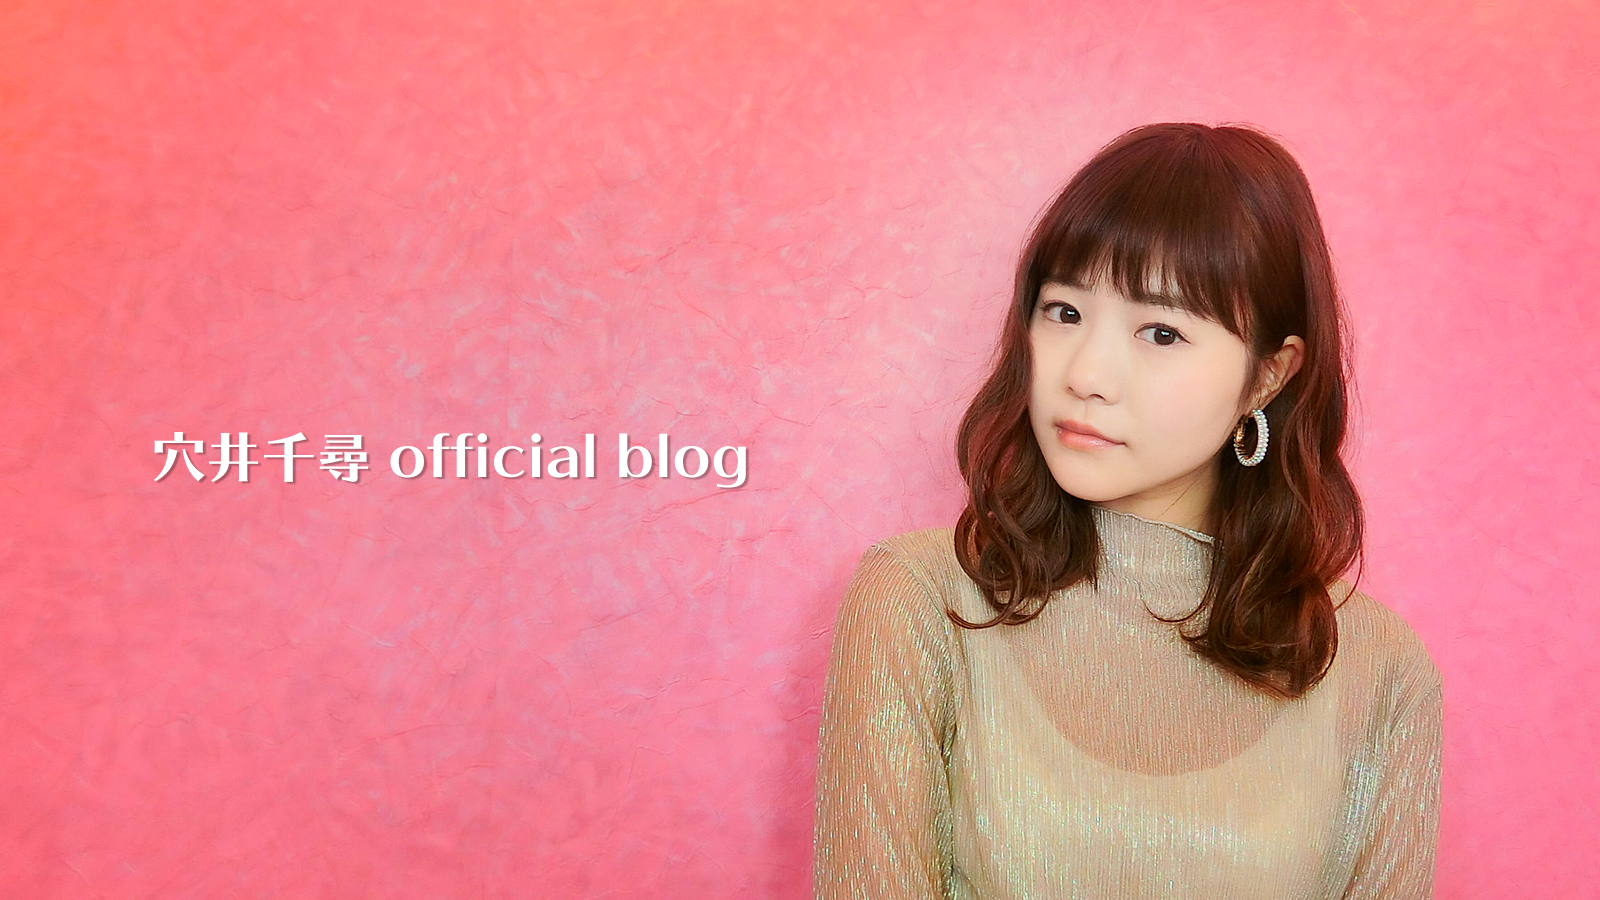 穴井千尋 official blog